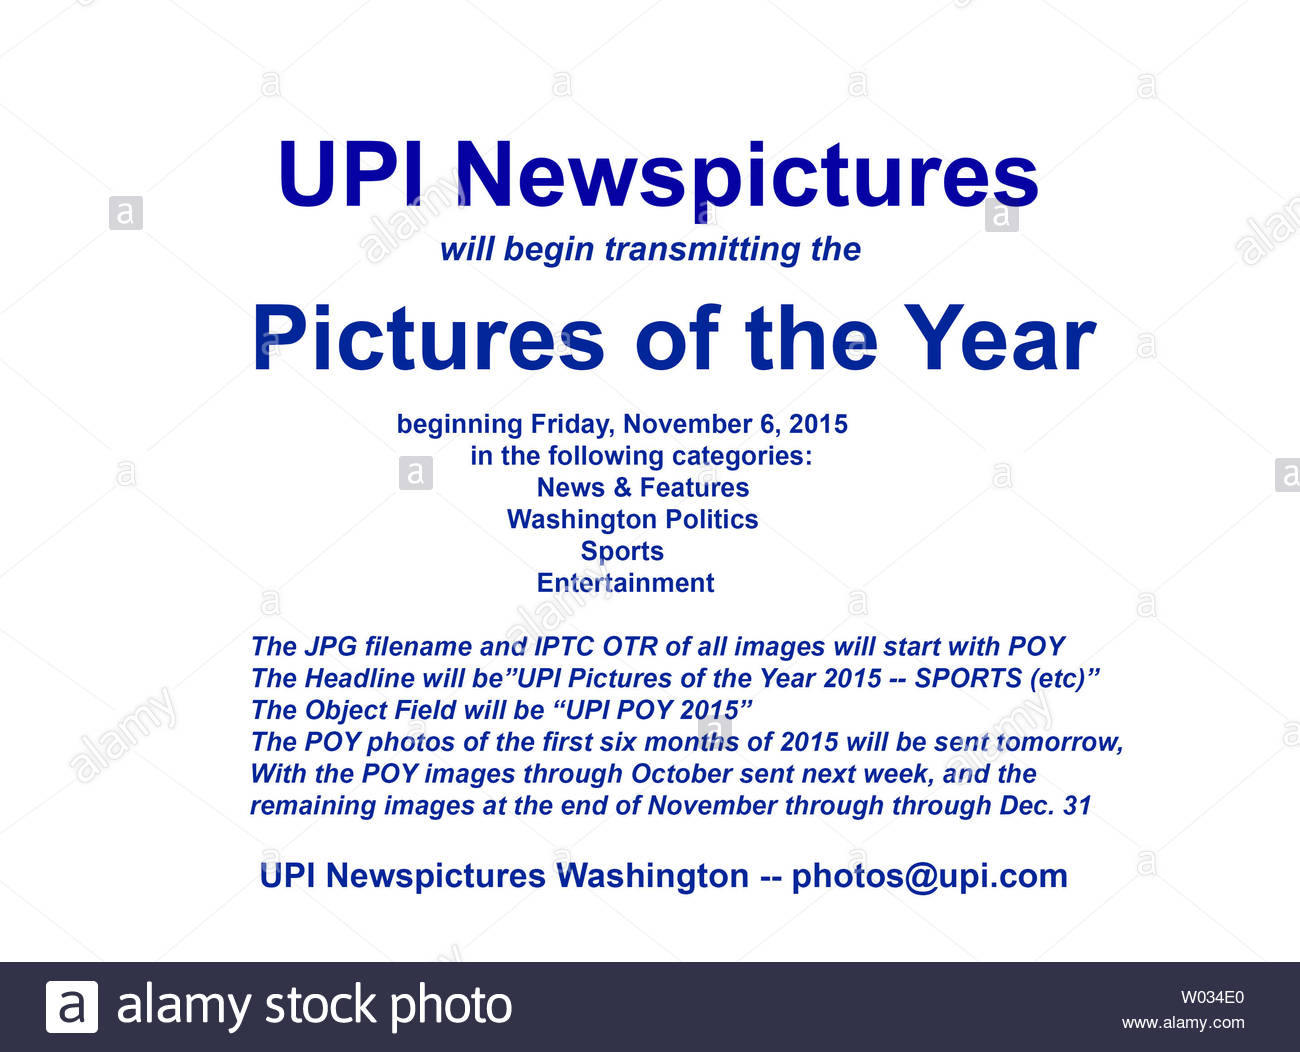 Upi Newspictures Has Transmitted The 2015 Pictures Of The